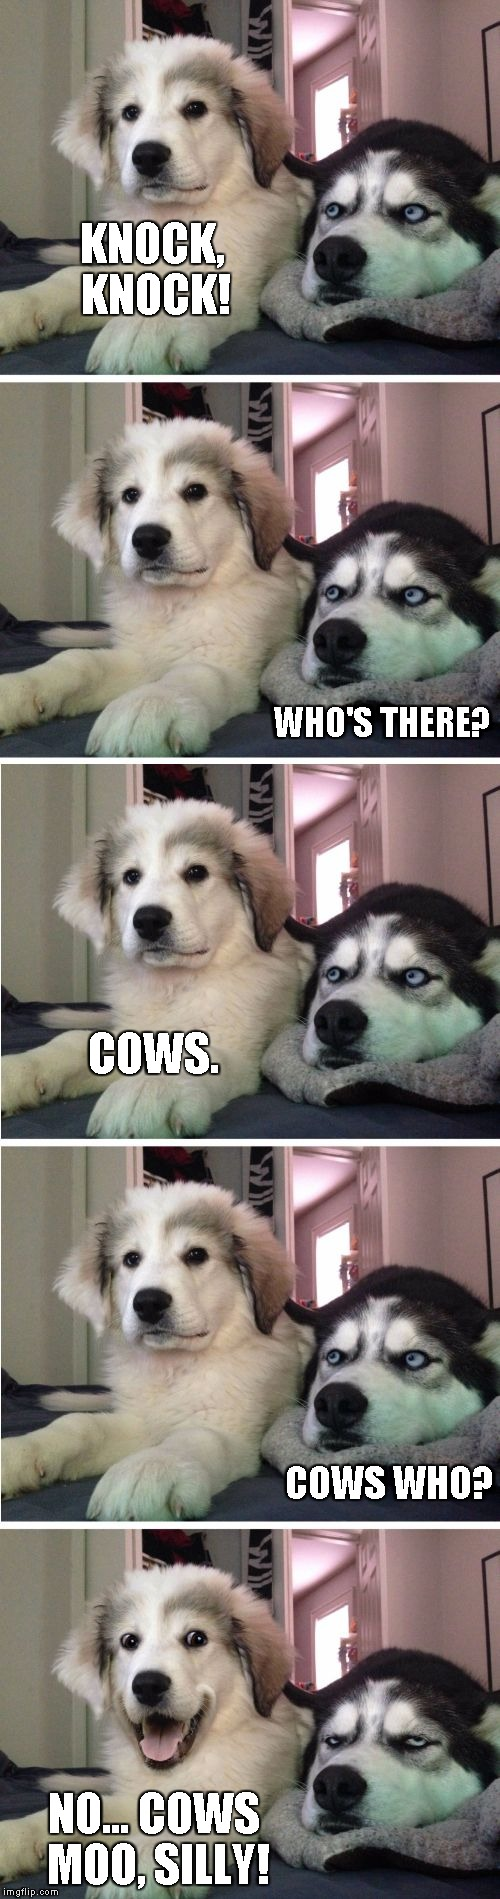 Knock Knock Dogs | KNOCK, KNOCK! NO... COWS MOO, SILLY! WHO'S THERE? COWS. COWS WHO? | image tagged in knock knock dogs | made w/ Imgflip meme maker